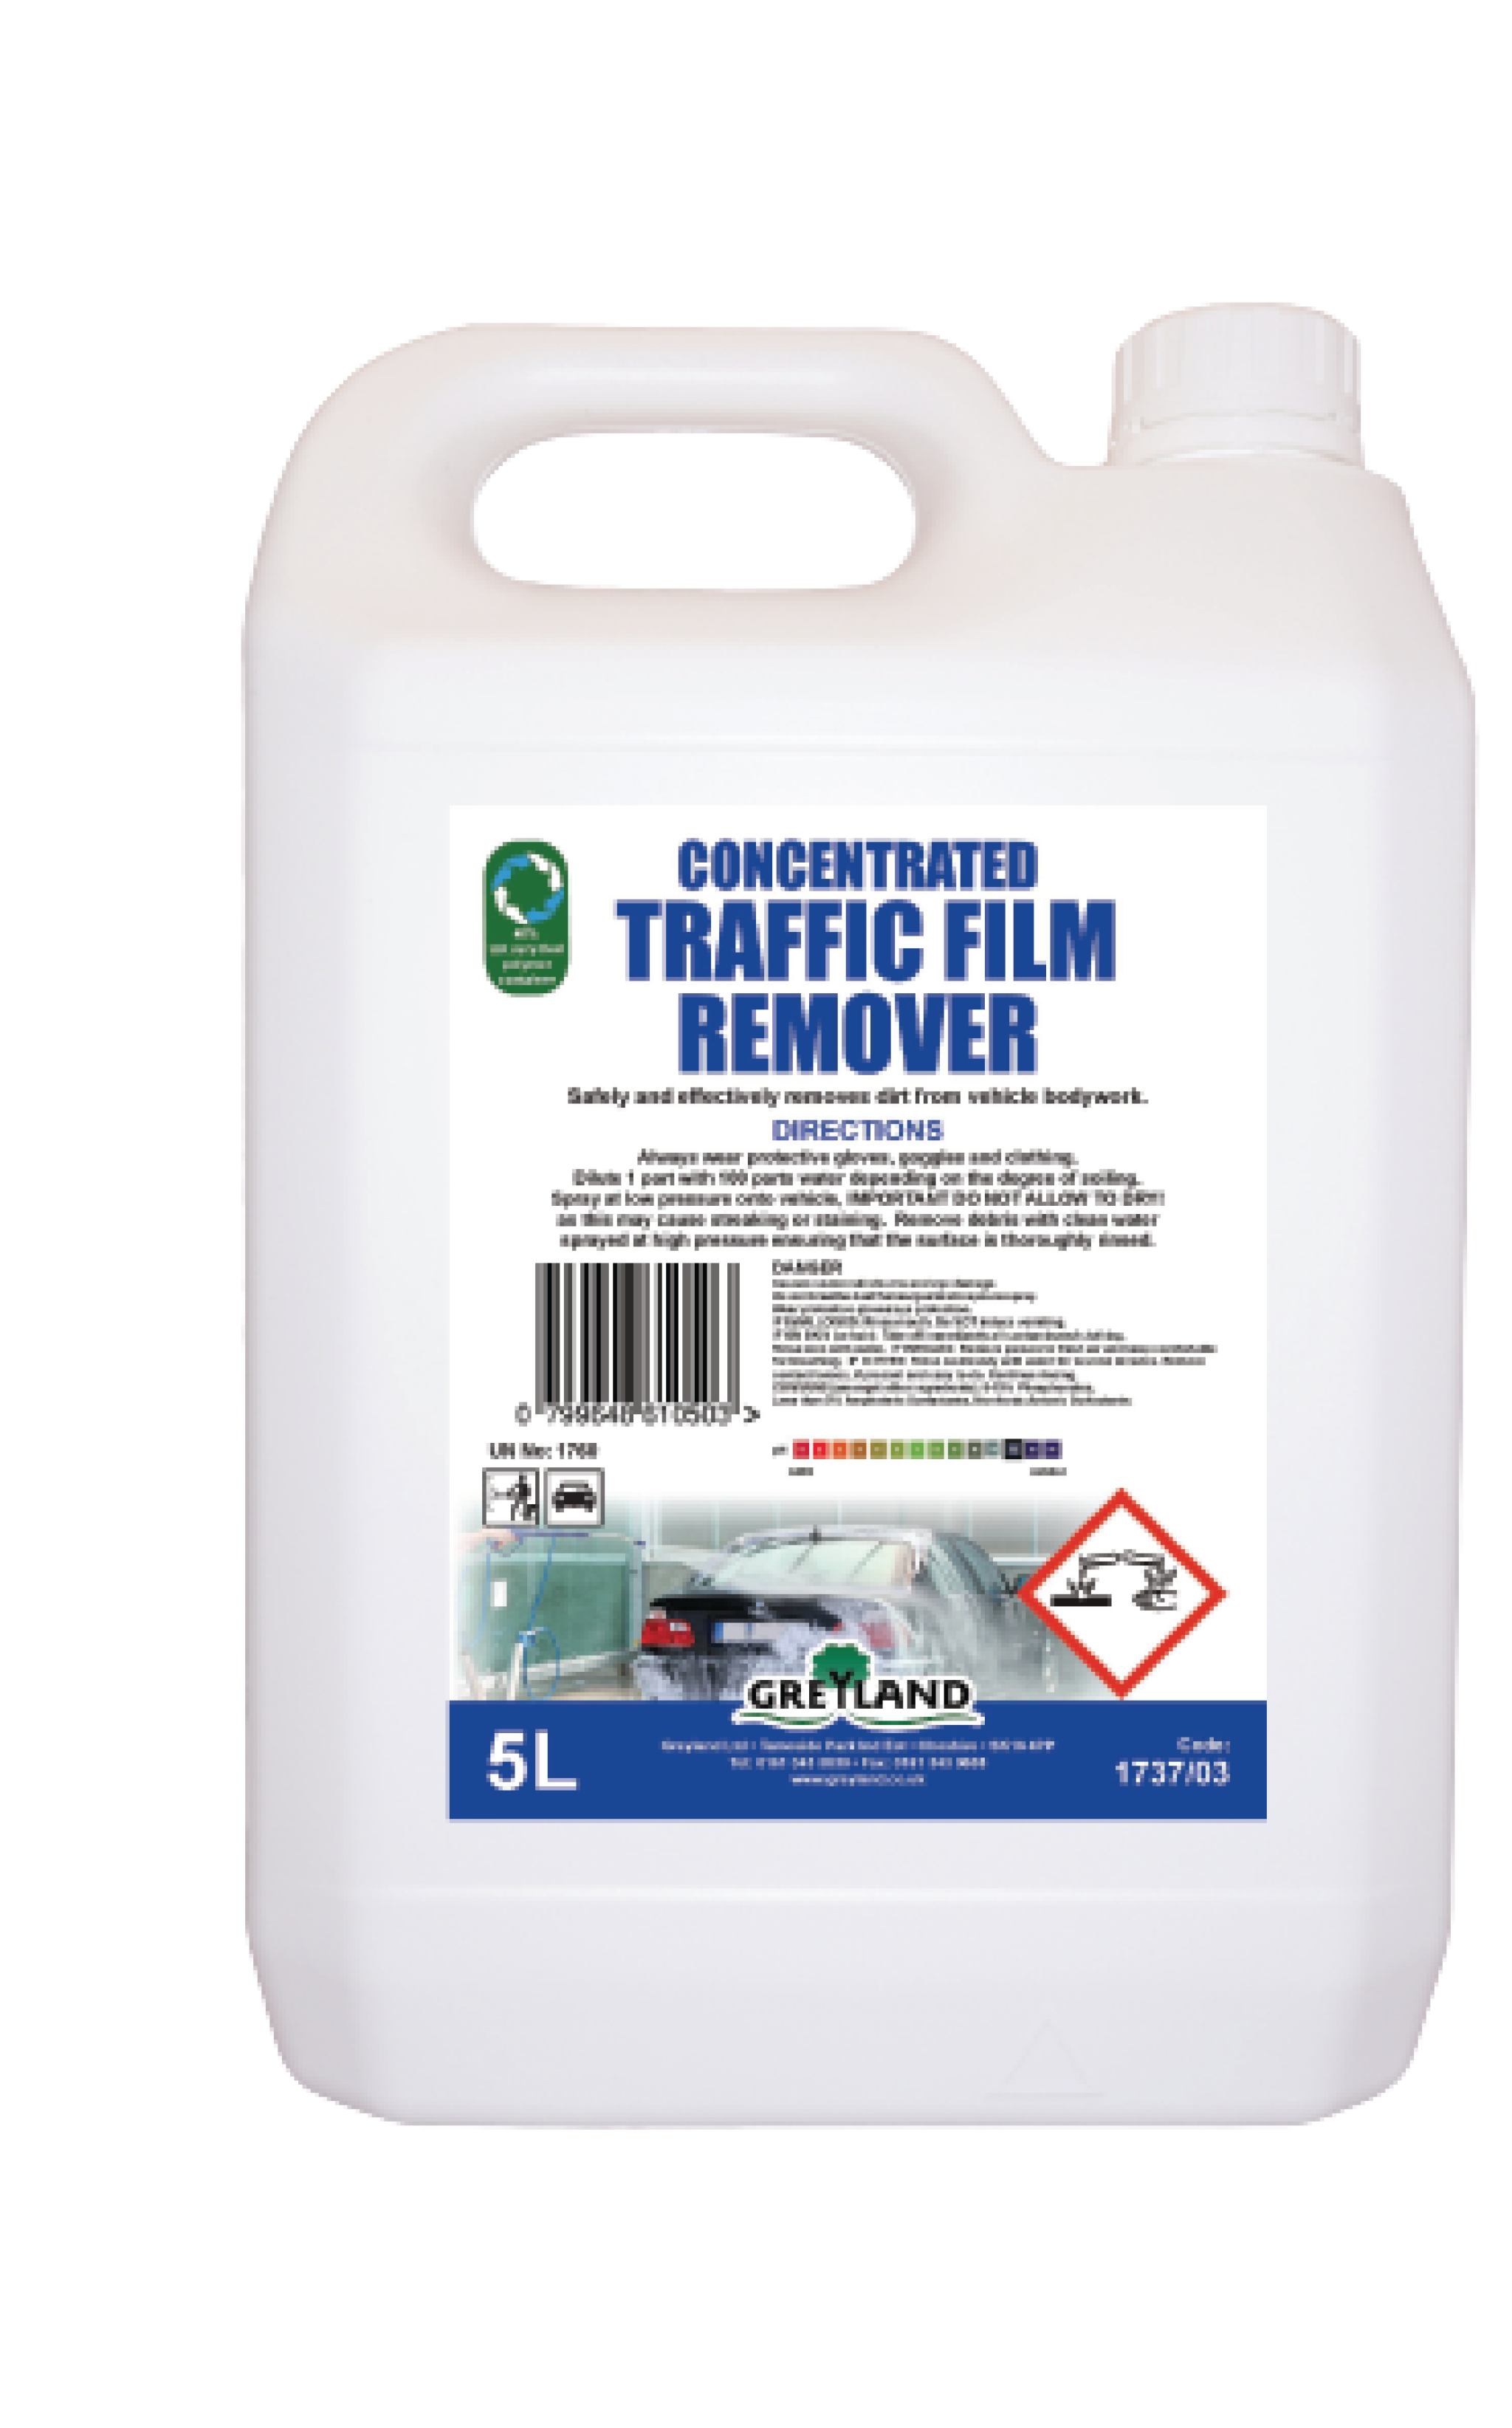 Concentrated_Traffic_Film_Remover_5ltr_40__Logo-01-removebg-preview.png